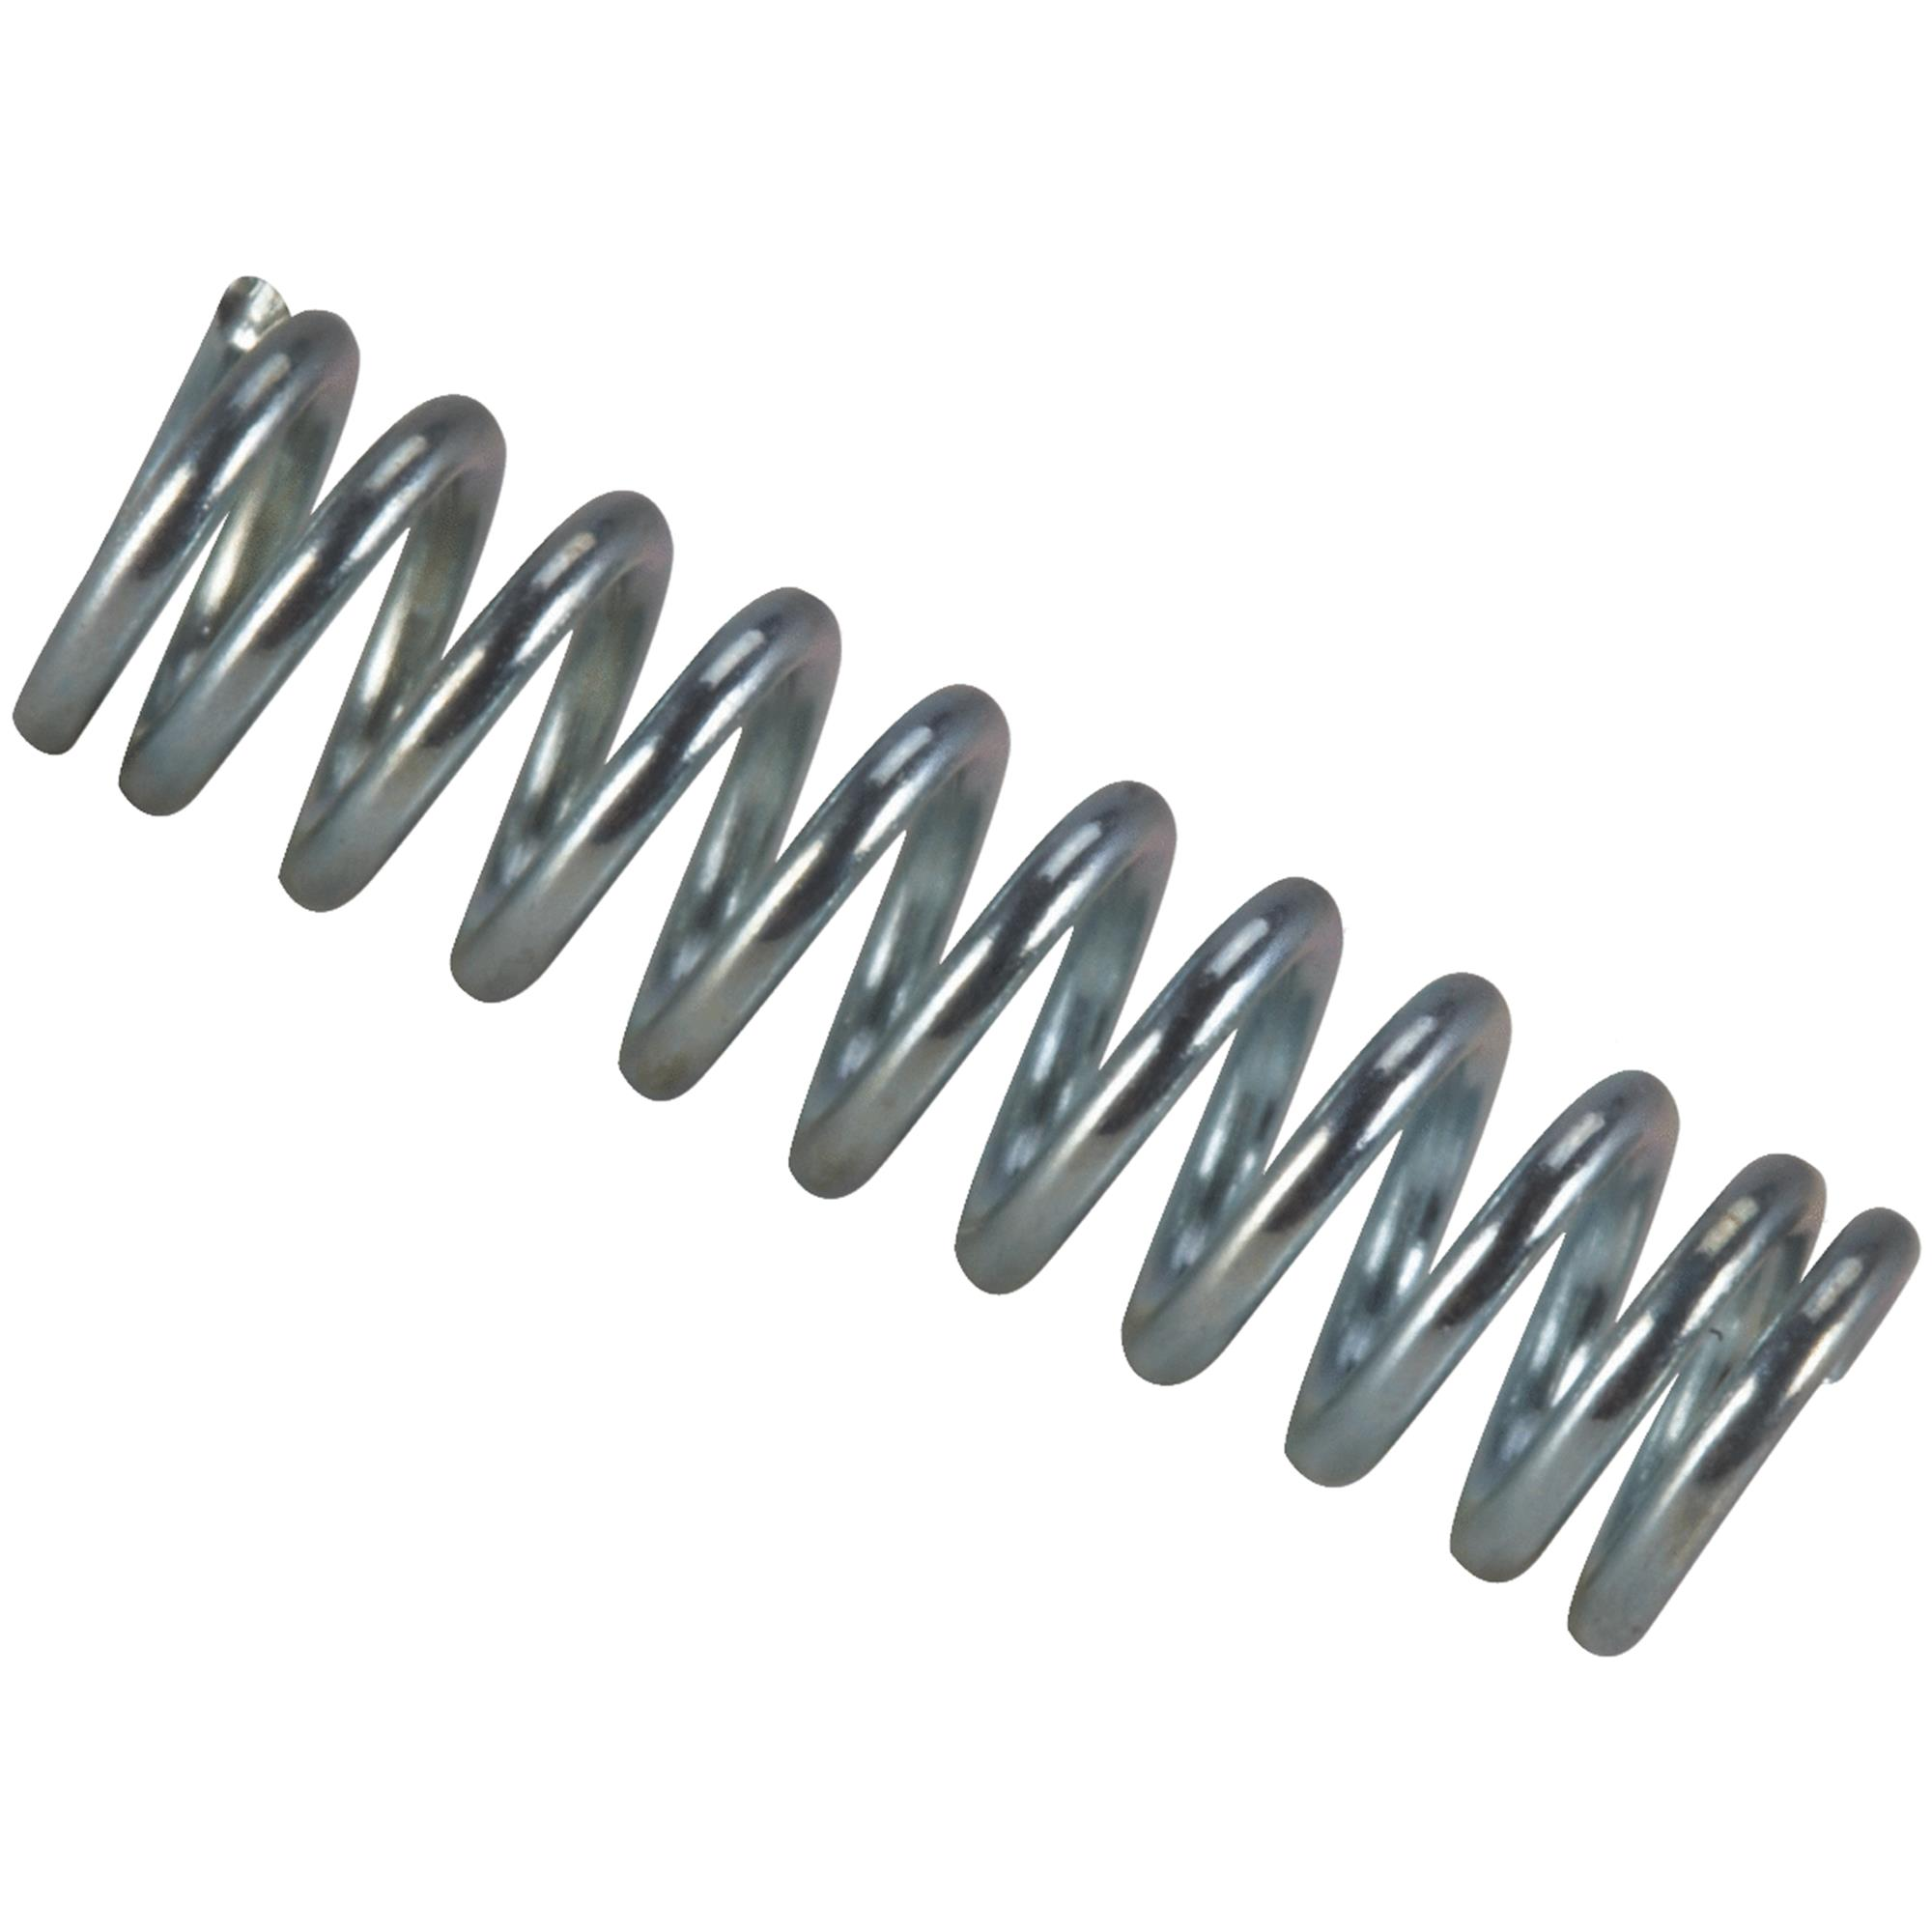 "Century Spring C-756 3-1/2"" Compression Springs, 2 Count"